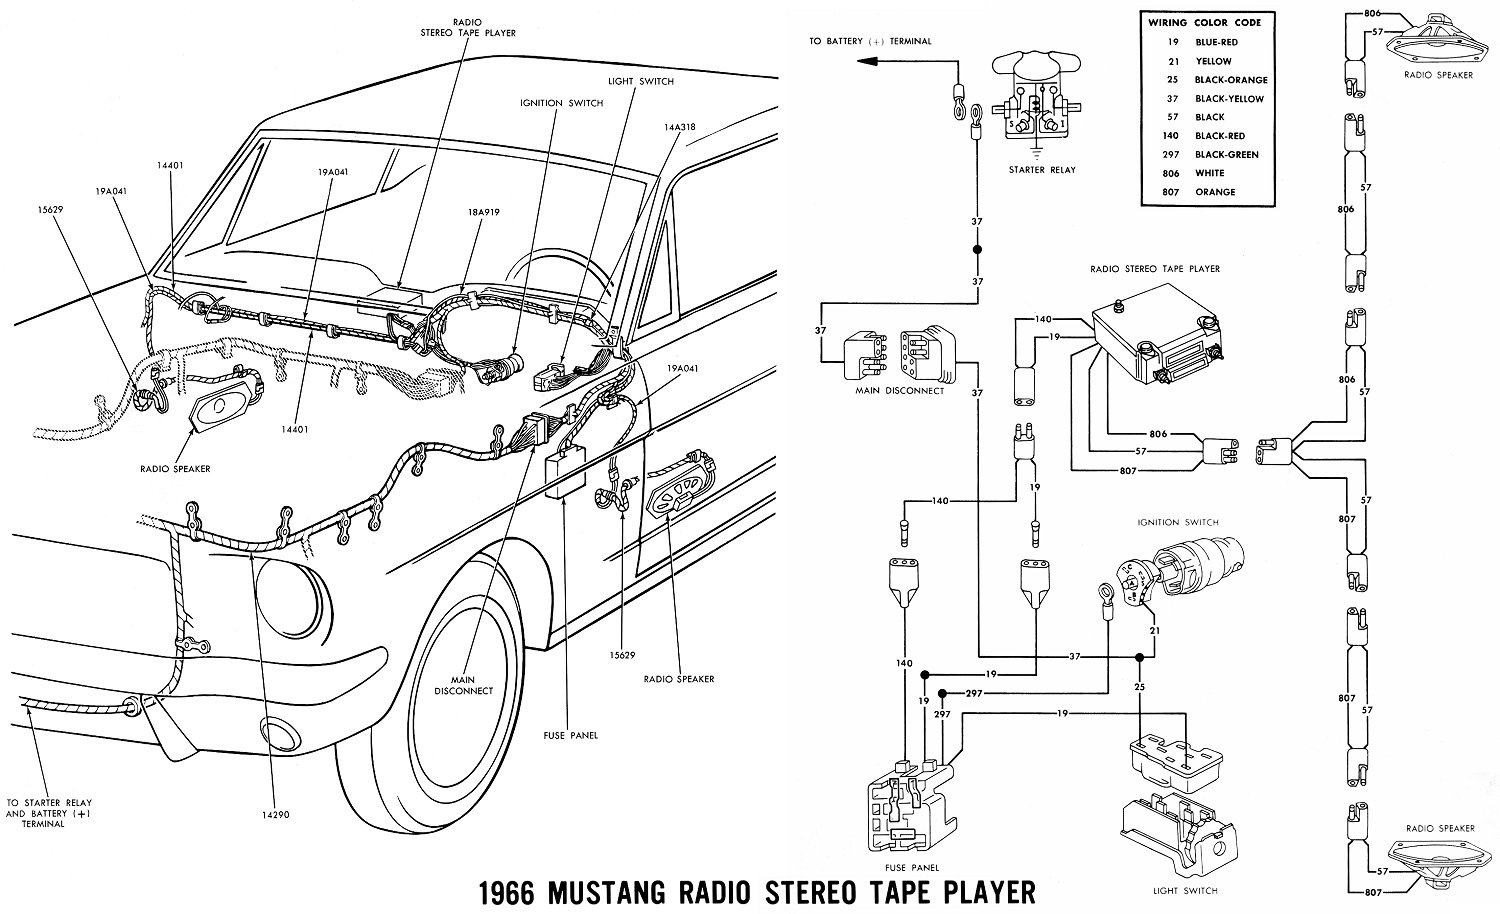 65 ford mustang wiring diagram Images Gallery